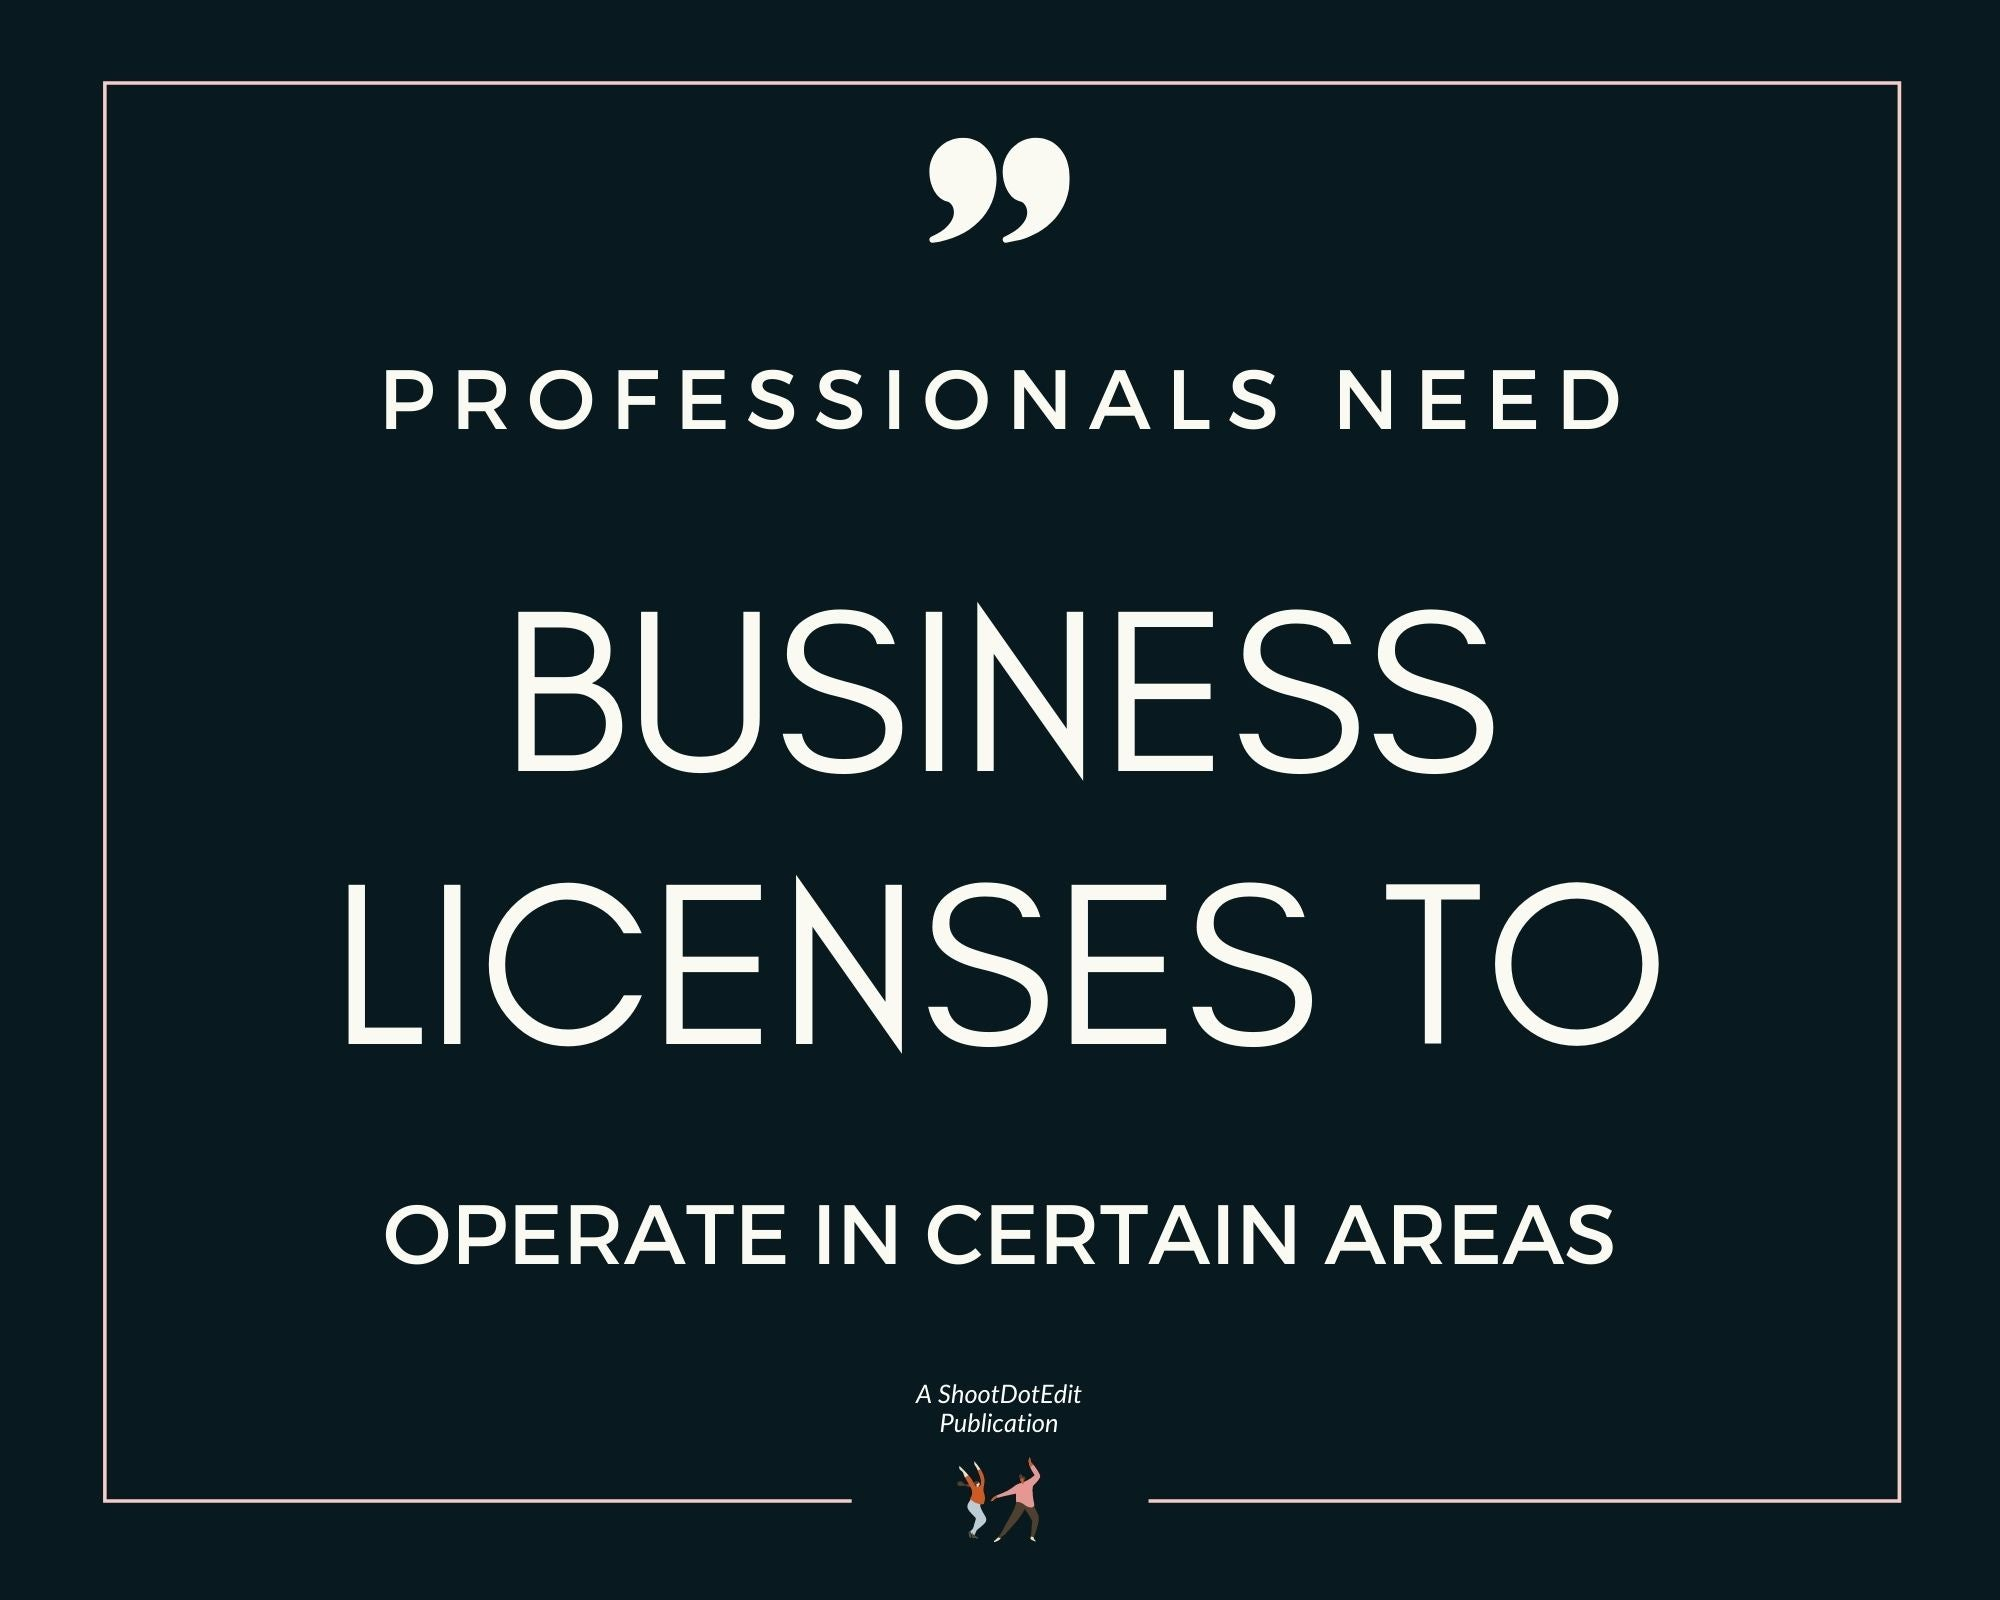 Infographic stating professionals need business licenses to operate in certain areas